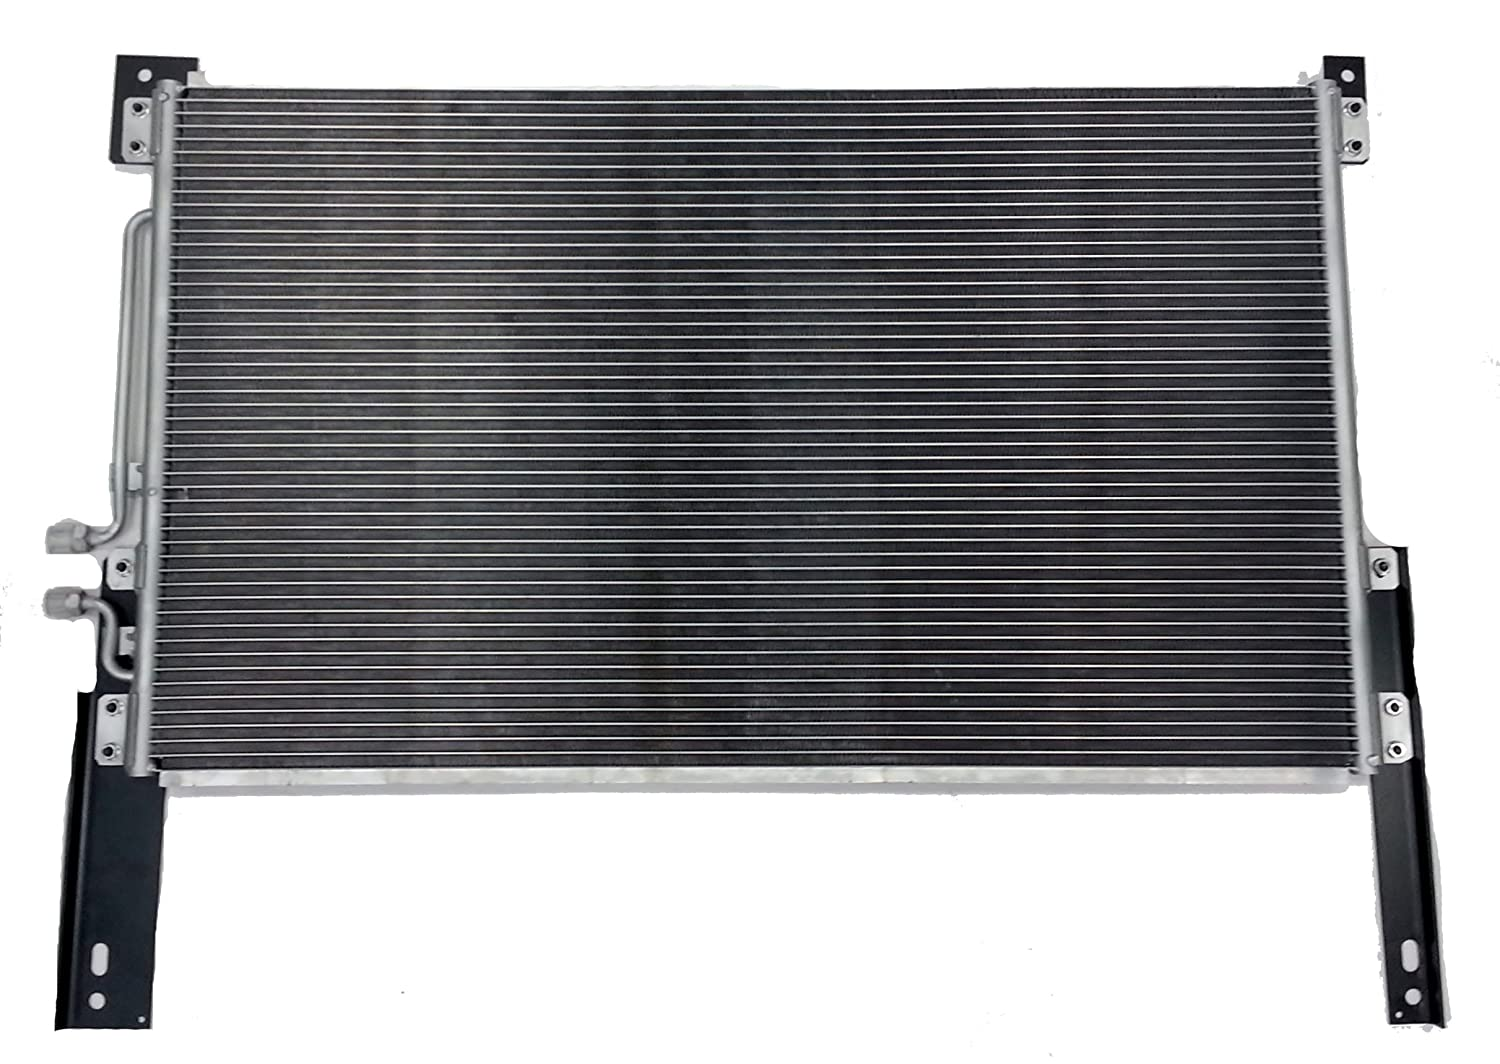 NEW Replacement International Truck AC Condenser for 9200 9300 9400 Series Truck